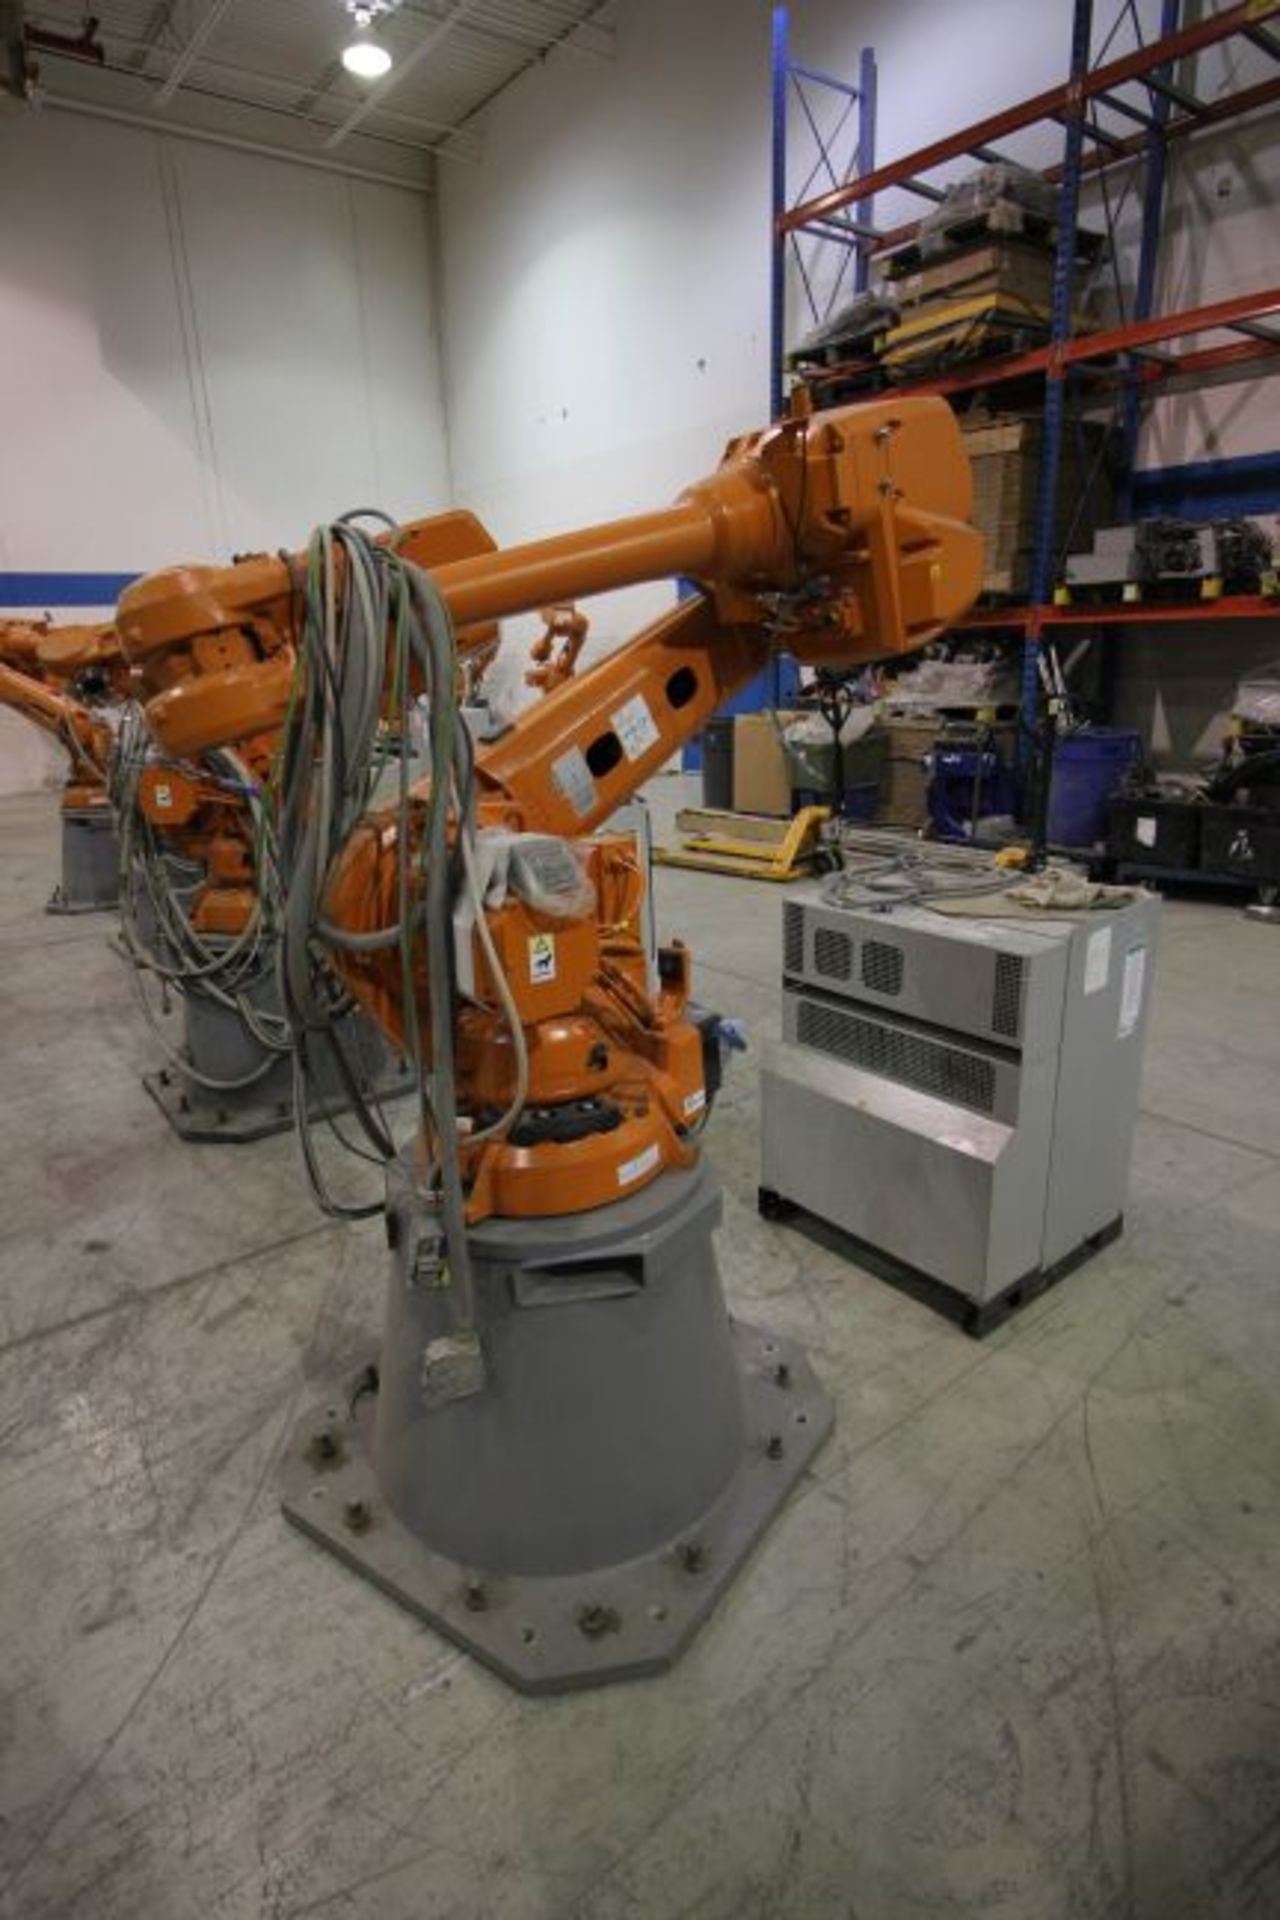 ABB ROBOT IRB 4600 2.55/40KG WITH IRC5 CONTROLS, YEAR 2014, SN 500798 TEACH PENDANT& CABLES - Image 2 of 9